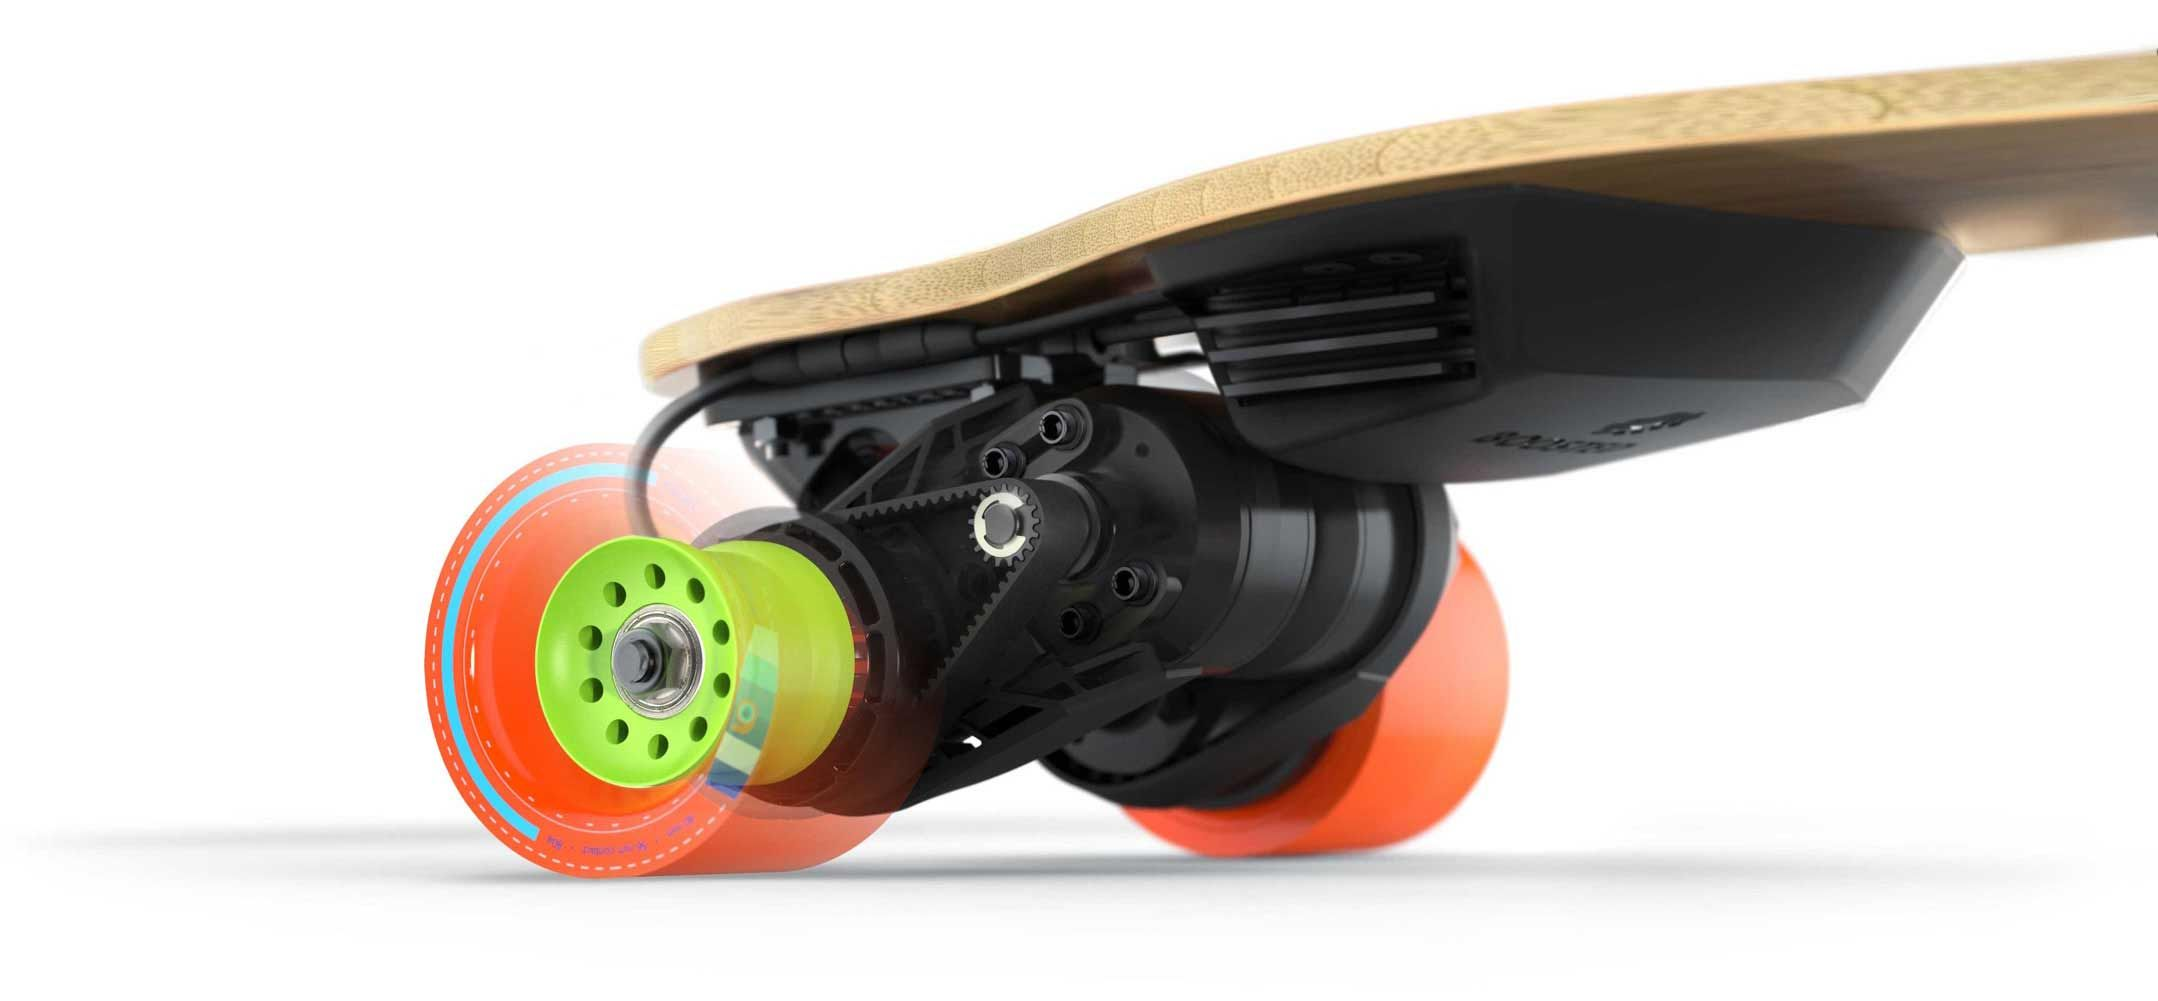 The high-performance electric skateboard with powerful acceleration, secure  braking and 14-mile range battery. The Boosted board has an unmatched ride  feel.